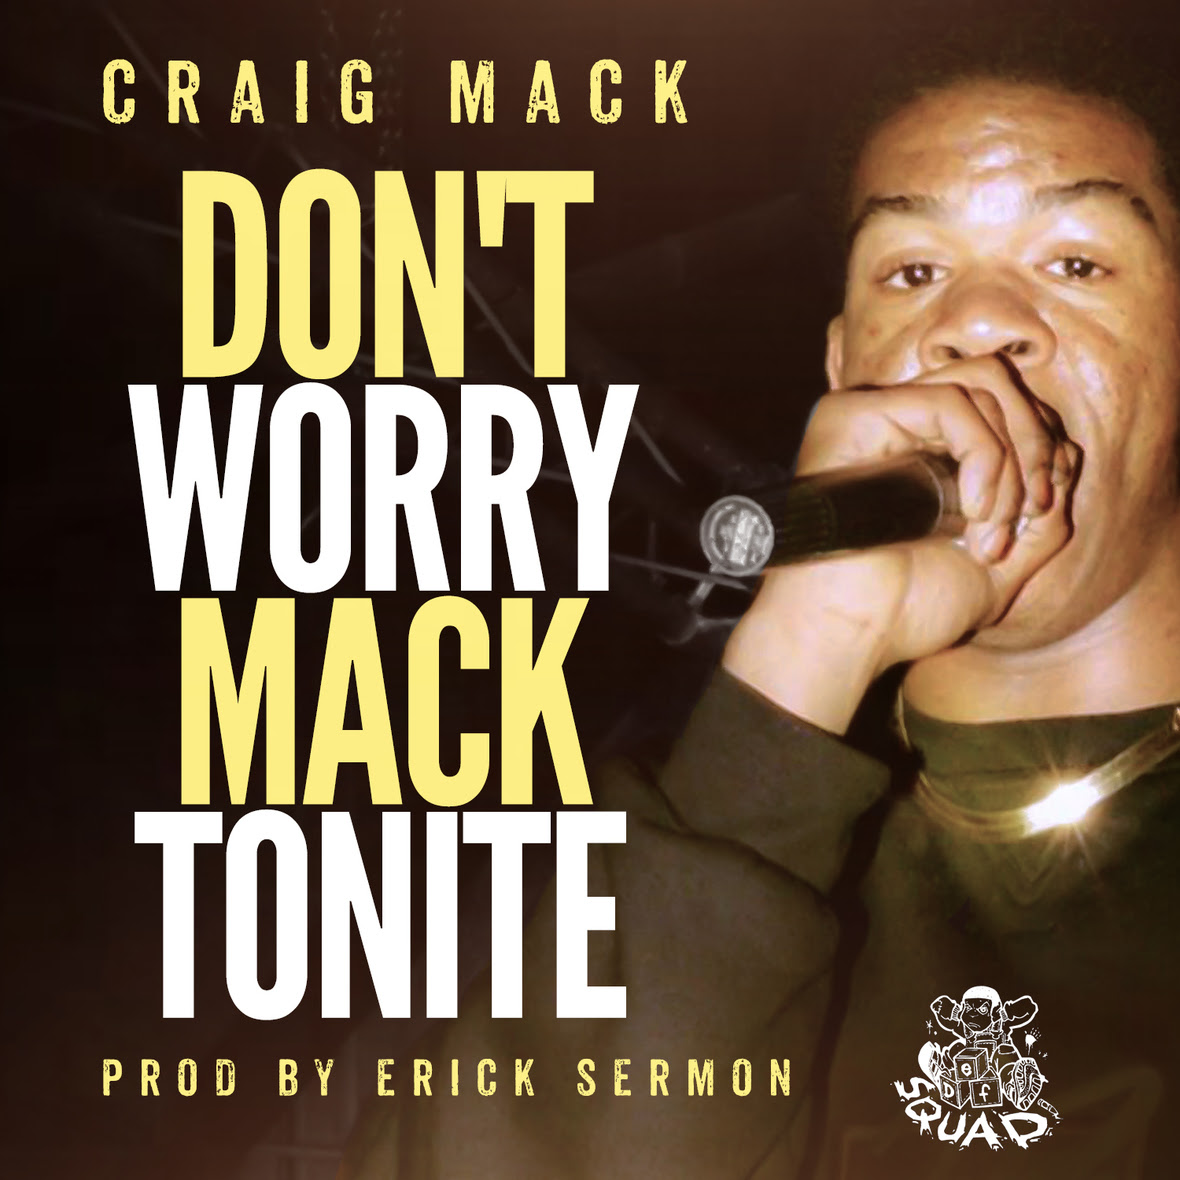 Craig Mack - Don't Worry Mack Tonite (Prod. by Erick Sermon)